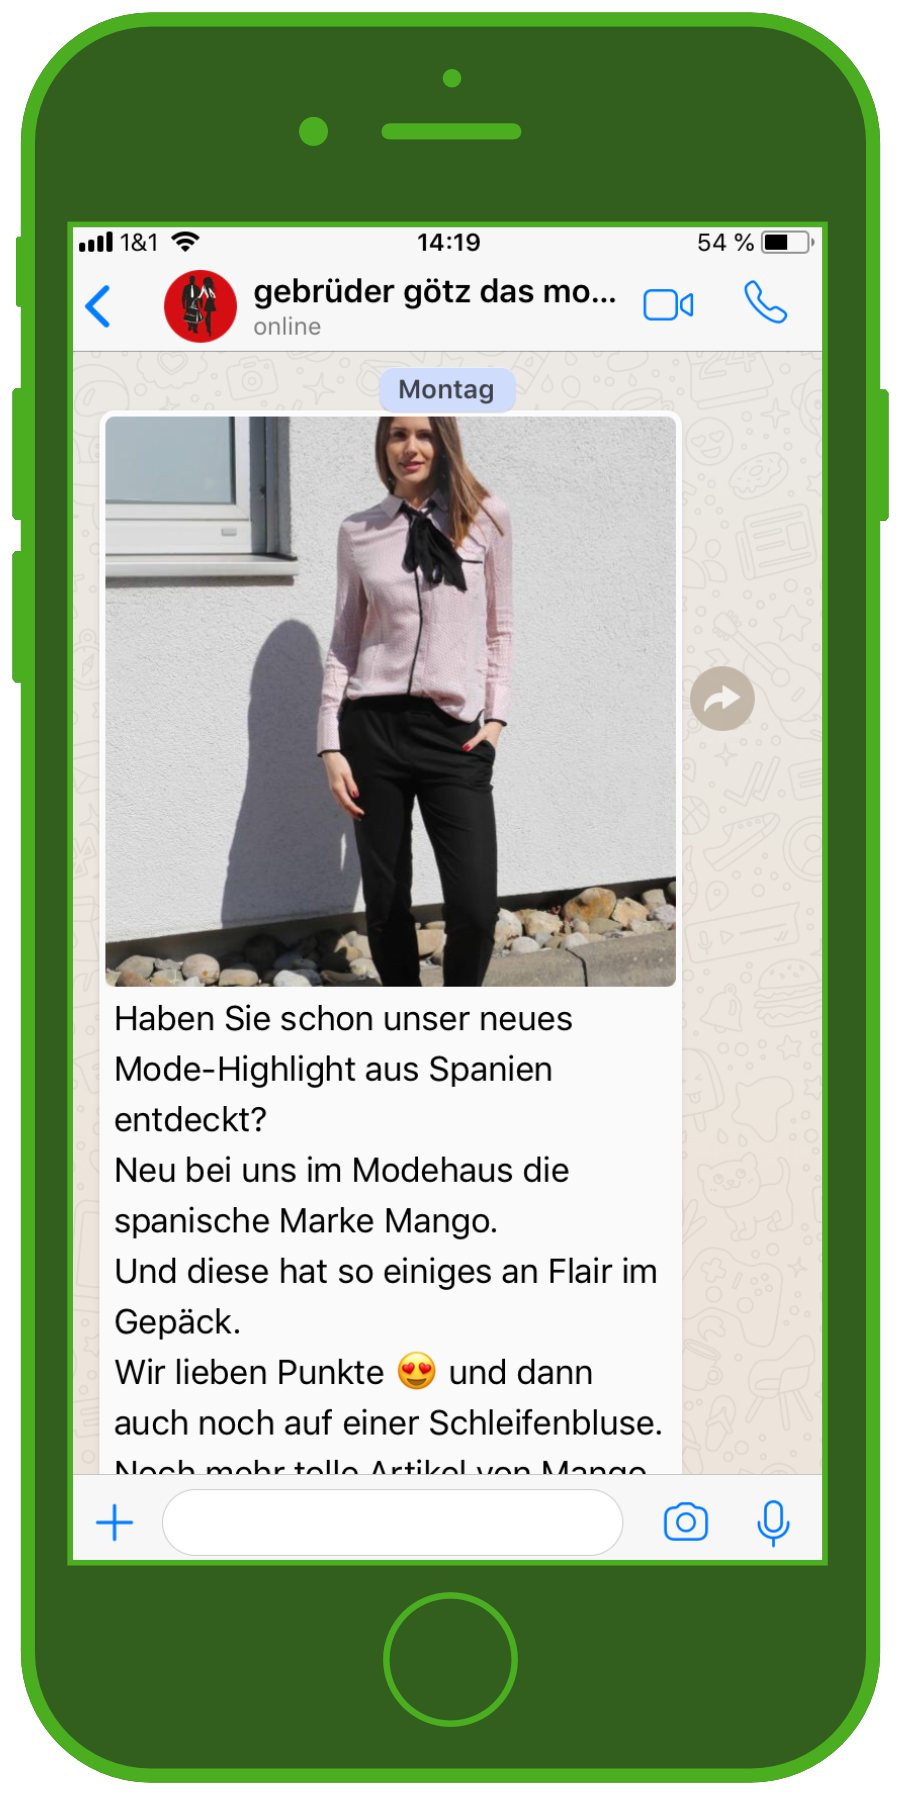 device-gebrüder-götz-fashion-screenshot-whatsapp